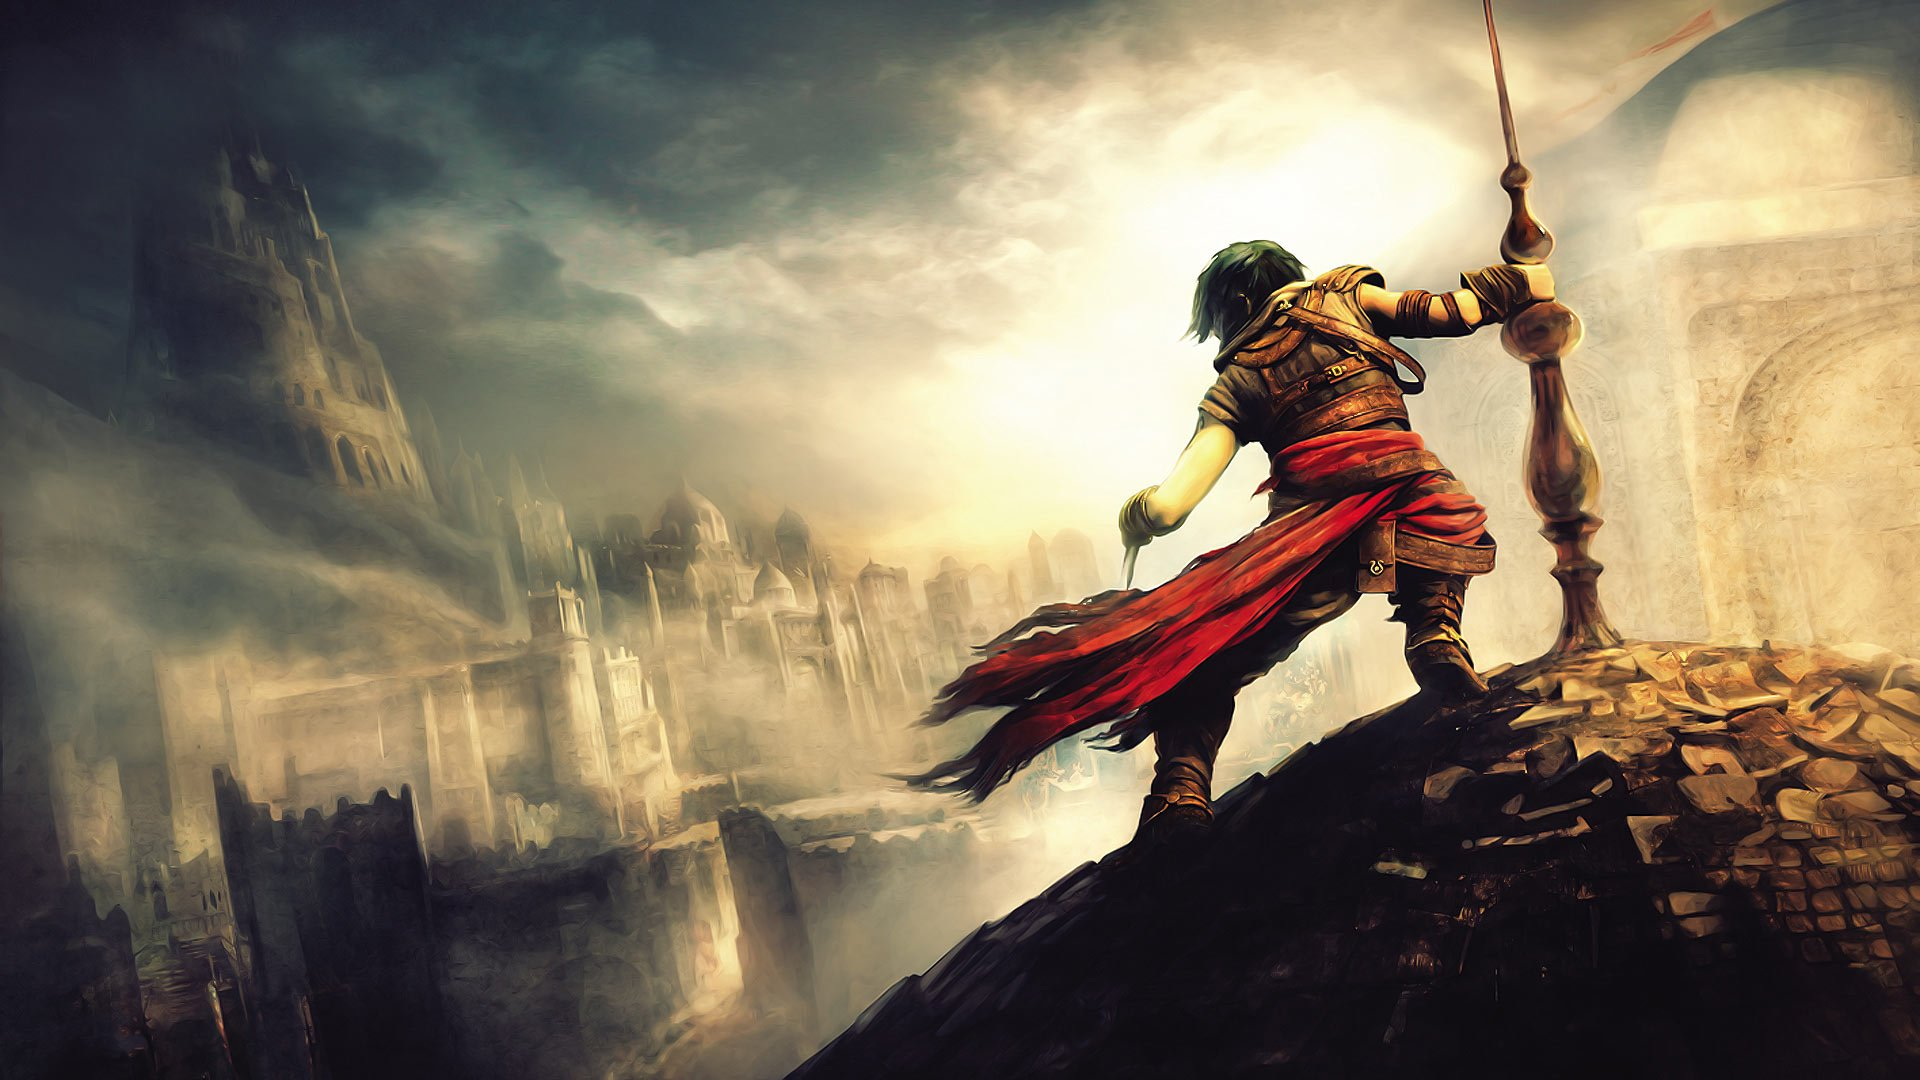 prince of persia forgotten sands full version free download for pc